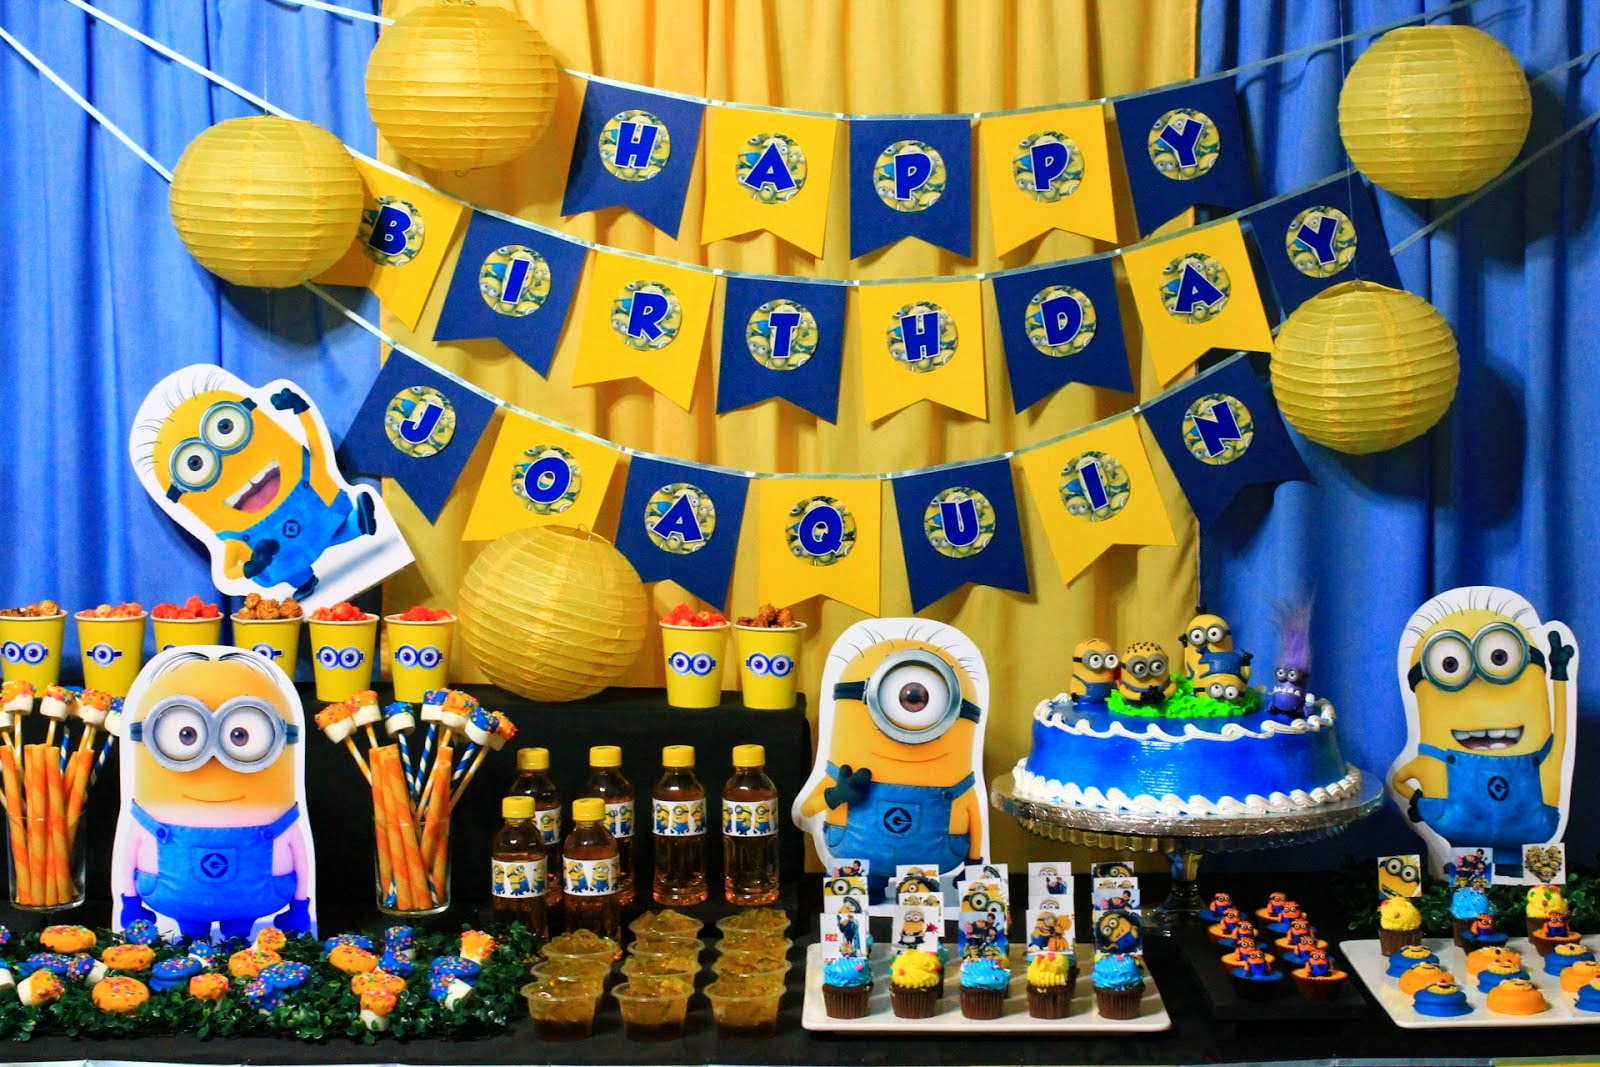 Fiesta cumplea os minion decoracion ideas diy y disfraces for Paginas de ideas de decoracion